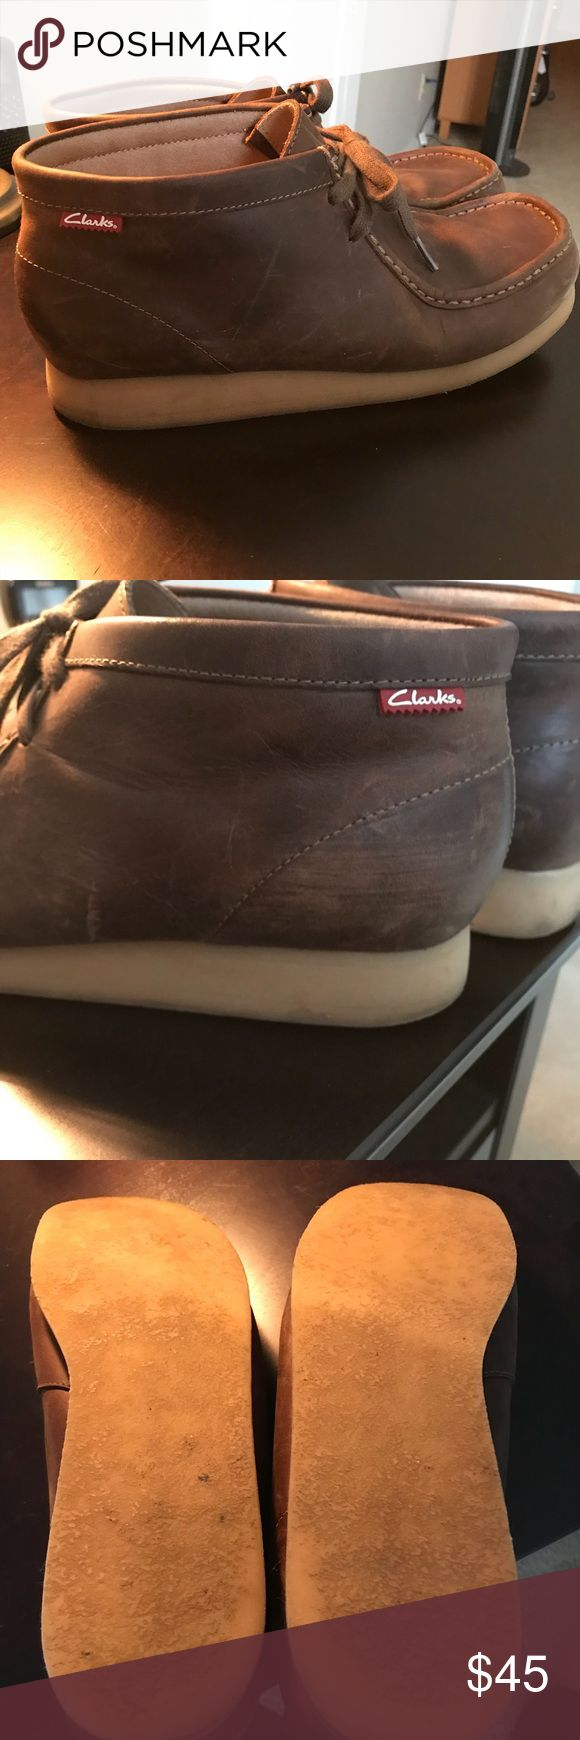 Men's Clarks Wallabee, Brown, 12 Good condition Clarks boot. Very comfortable, soles are in great shape! Size 12, brown leather. Clarks Shoes Chukka Boots